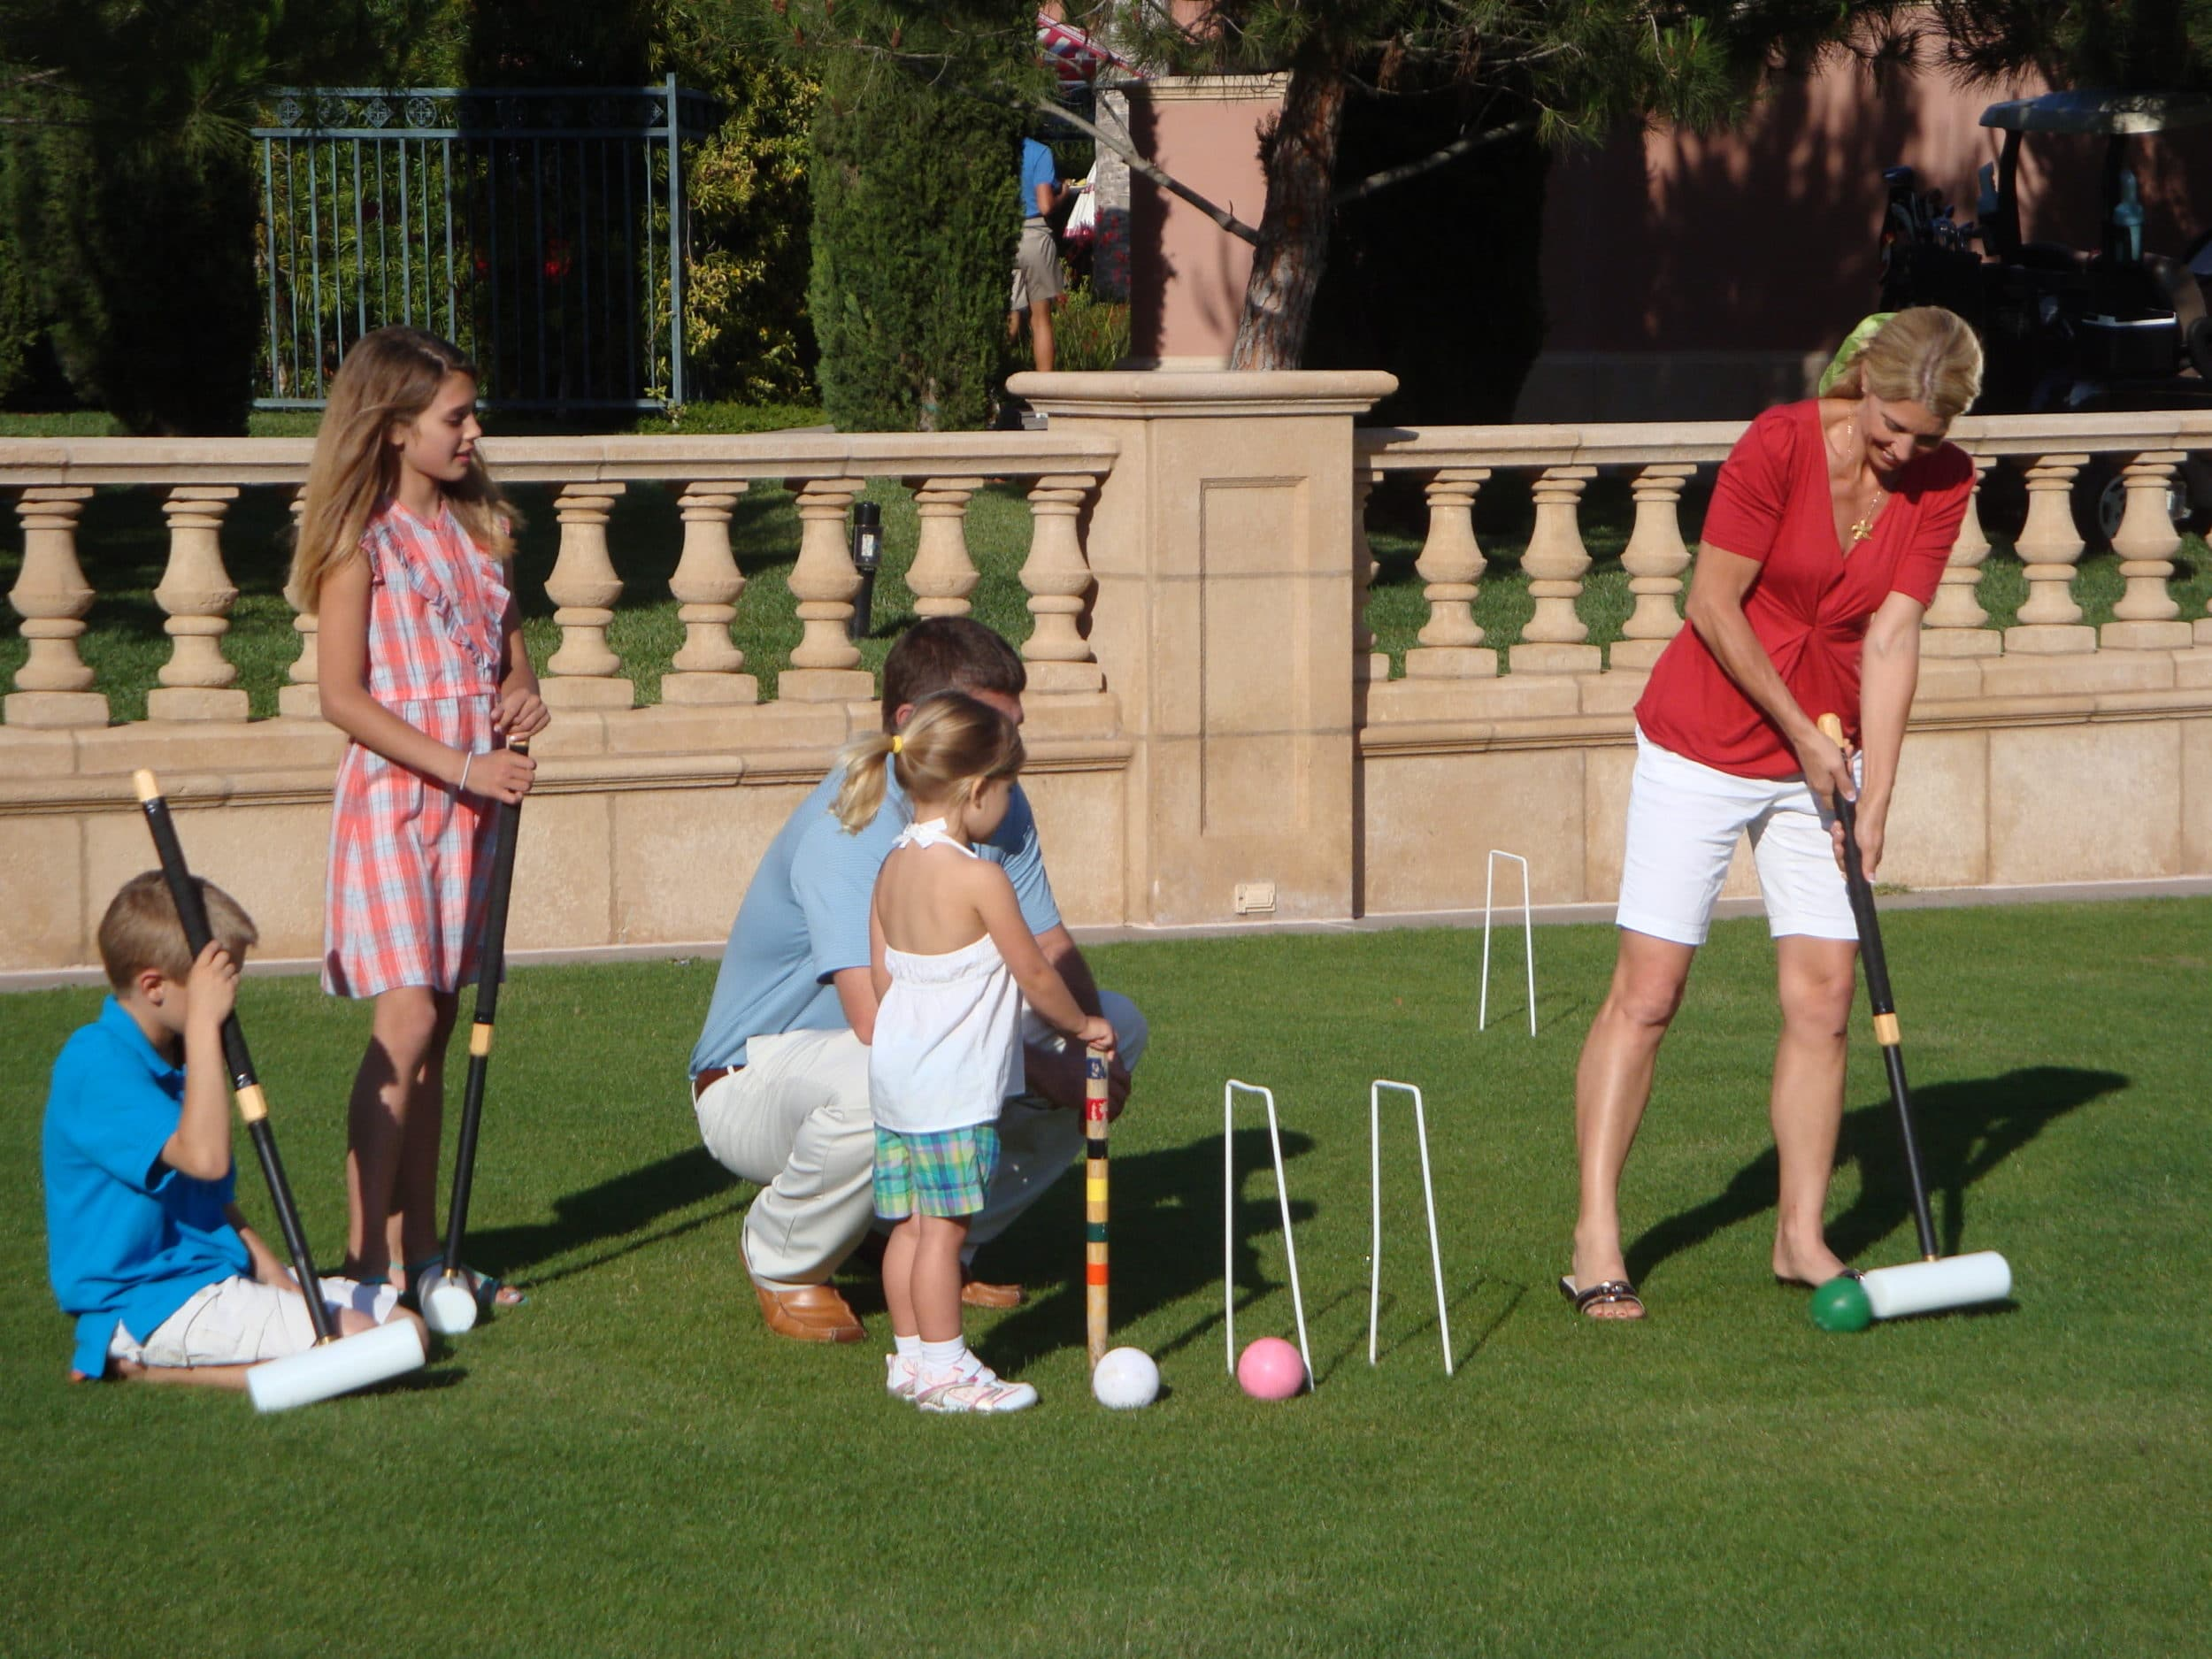 San Diego Family Hotels: Fairmont Grand Del Mar resort activities